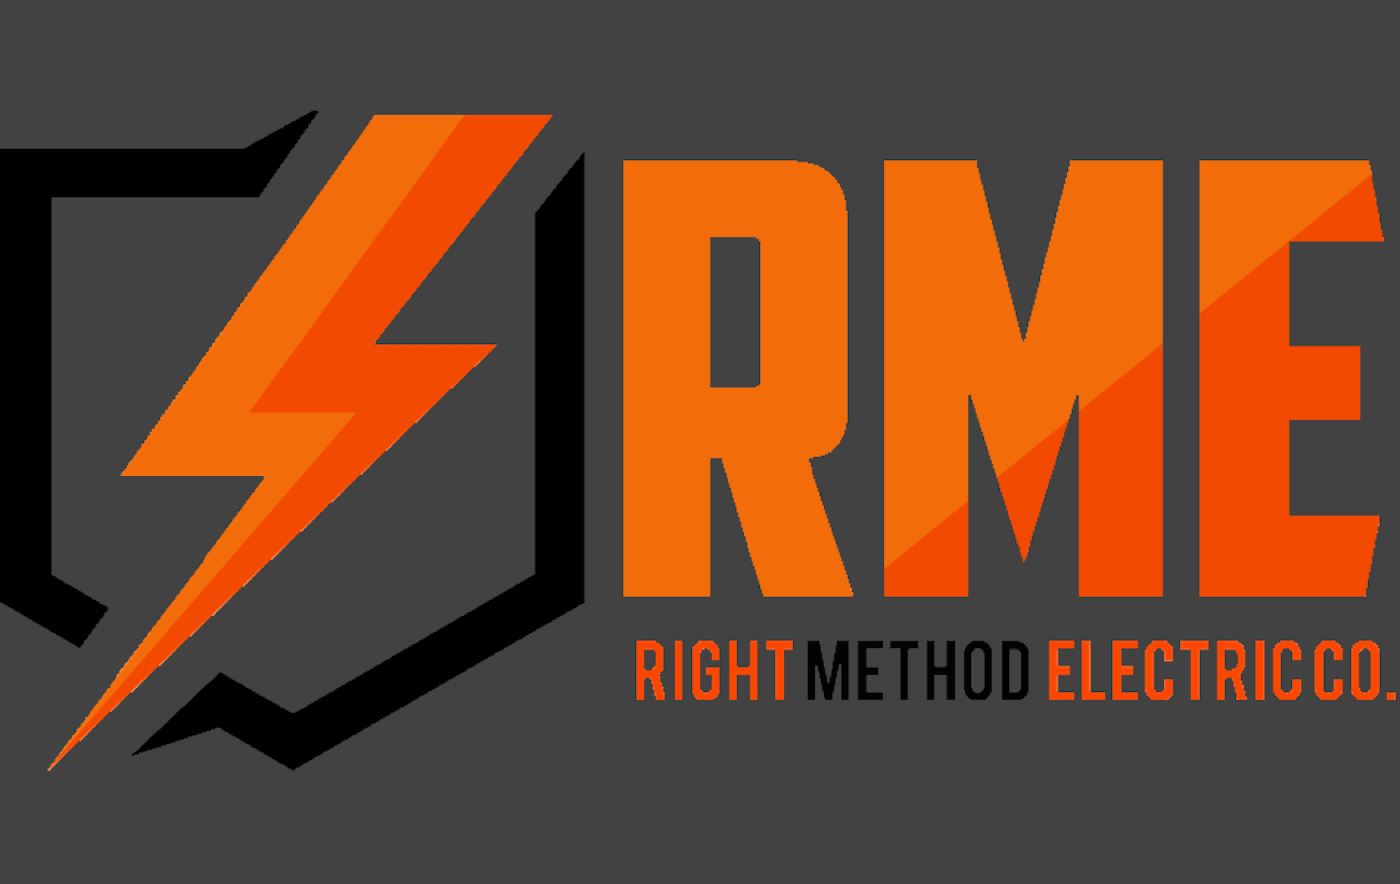 Right Method Electric